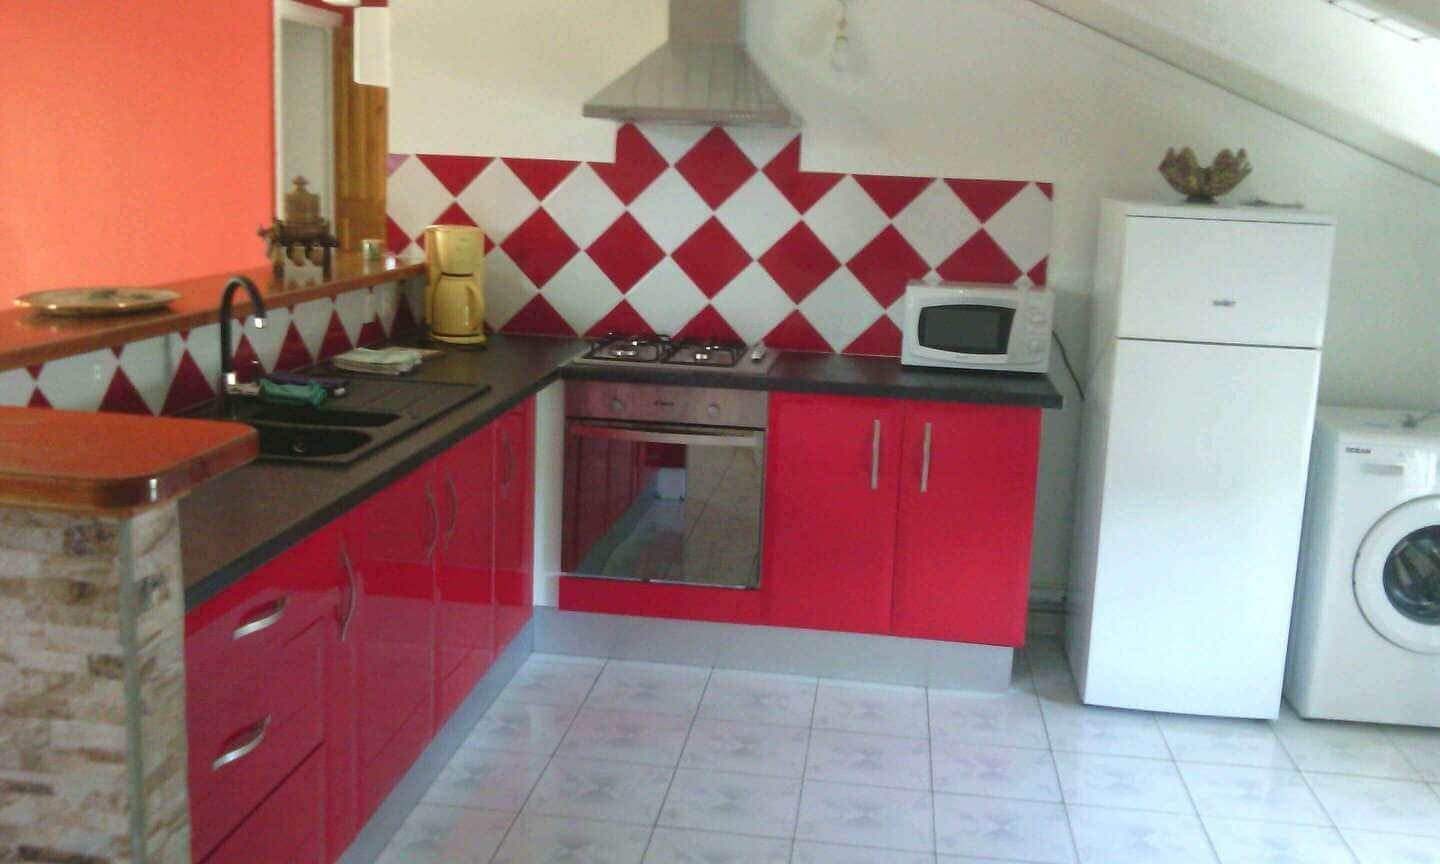 Location maison appartement guadeloupe 97129 lamentin 99 for Appartement maison